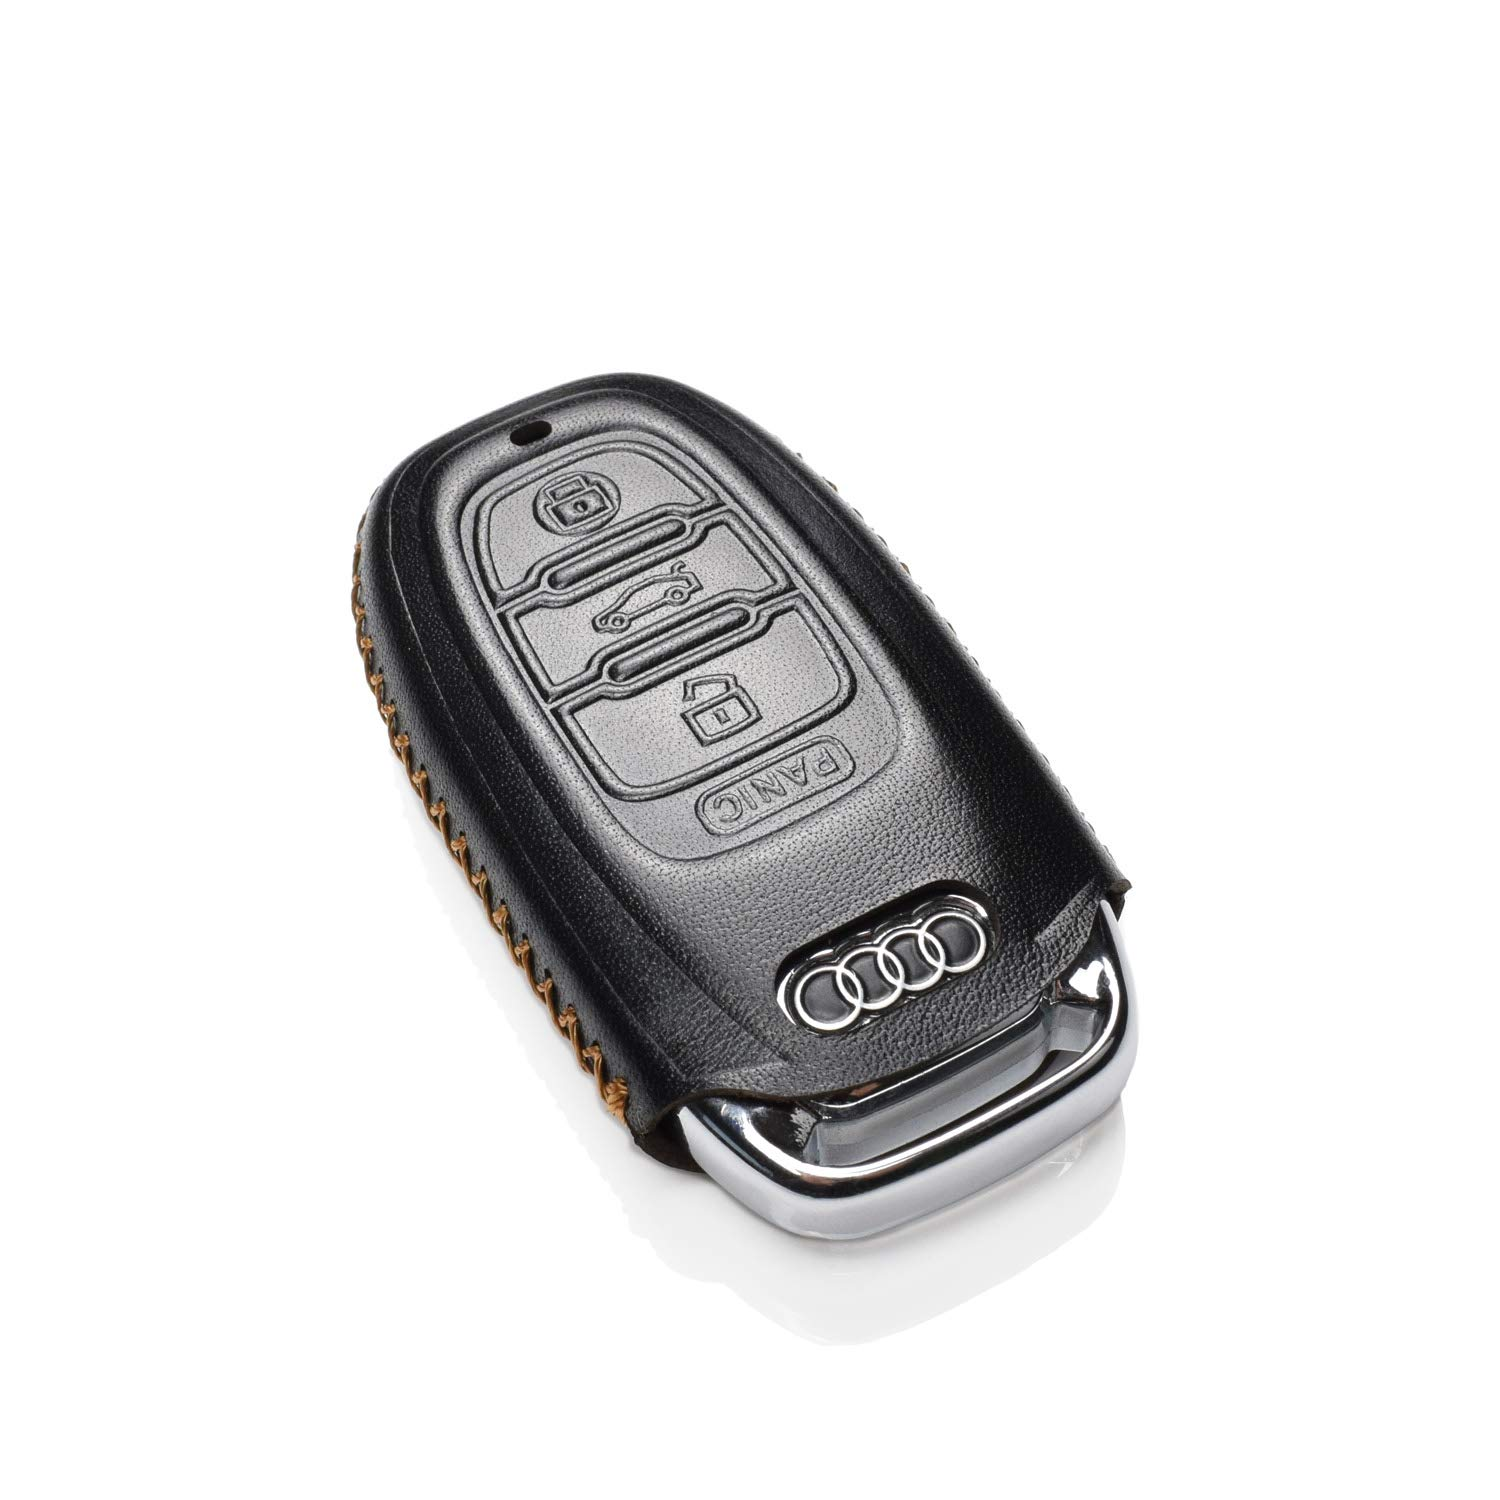 Vitodeco Genuine Leather Keyless Smart Key Fob Case Cover with Key Chain for Audi A1 A3 A4 A5 A6 A7 A8 Q5 Q7 R8 S5 S7 Q5 RS 4 Buttons, Brown